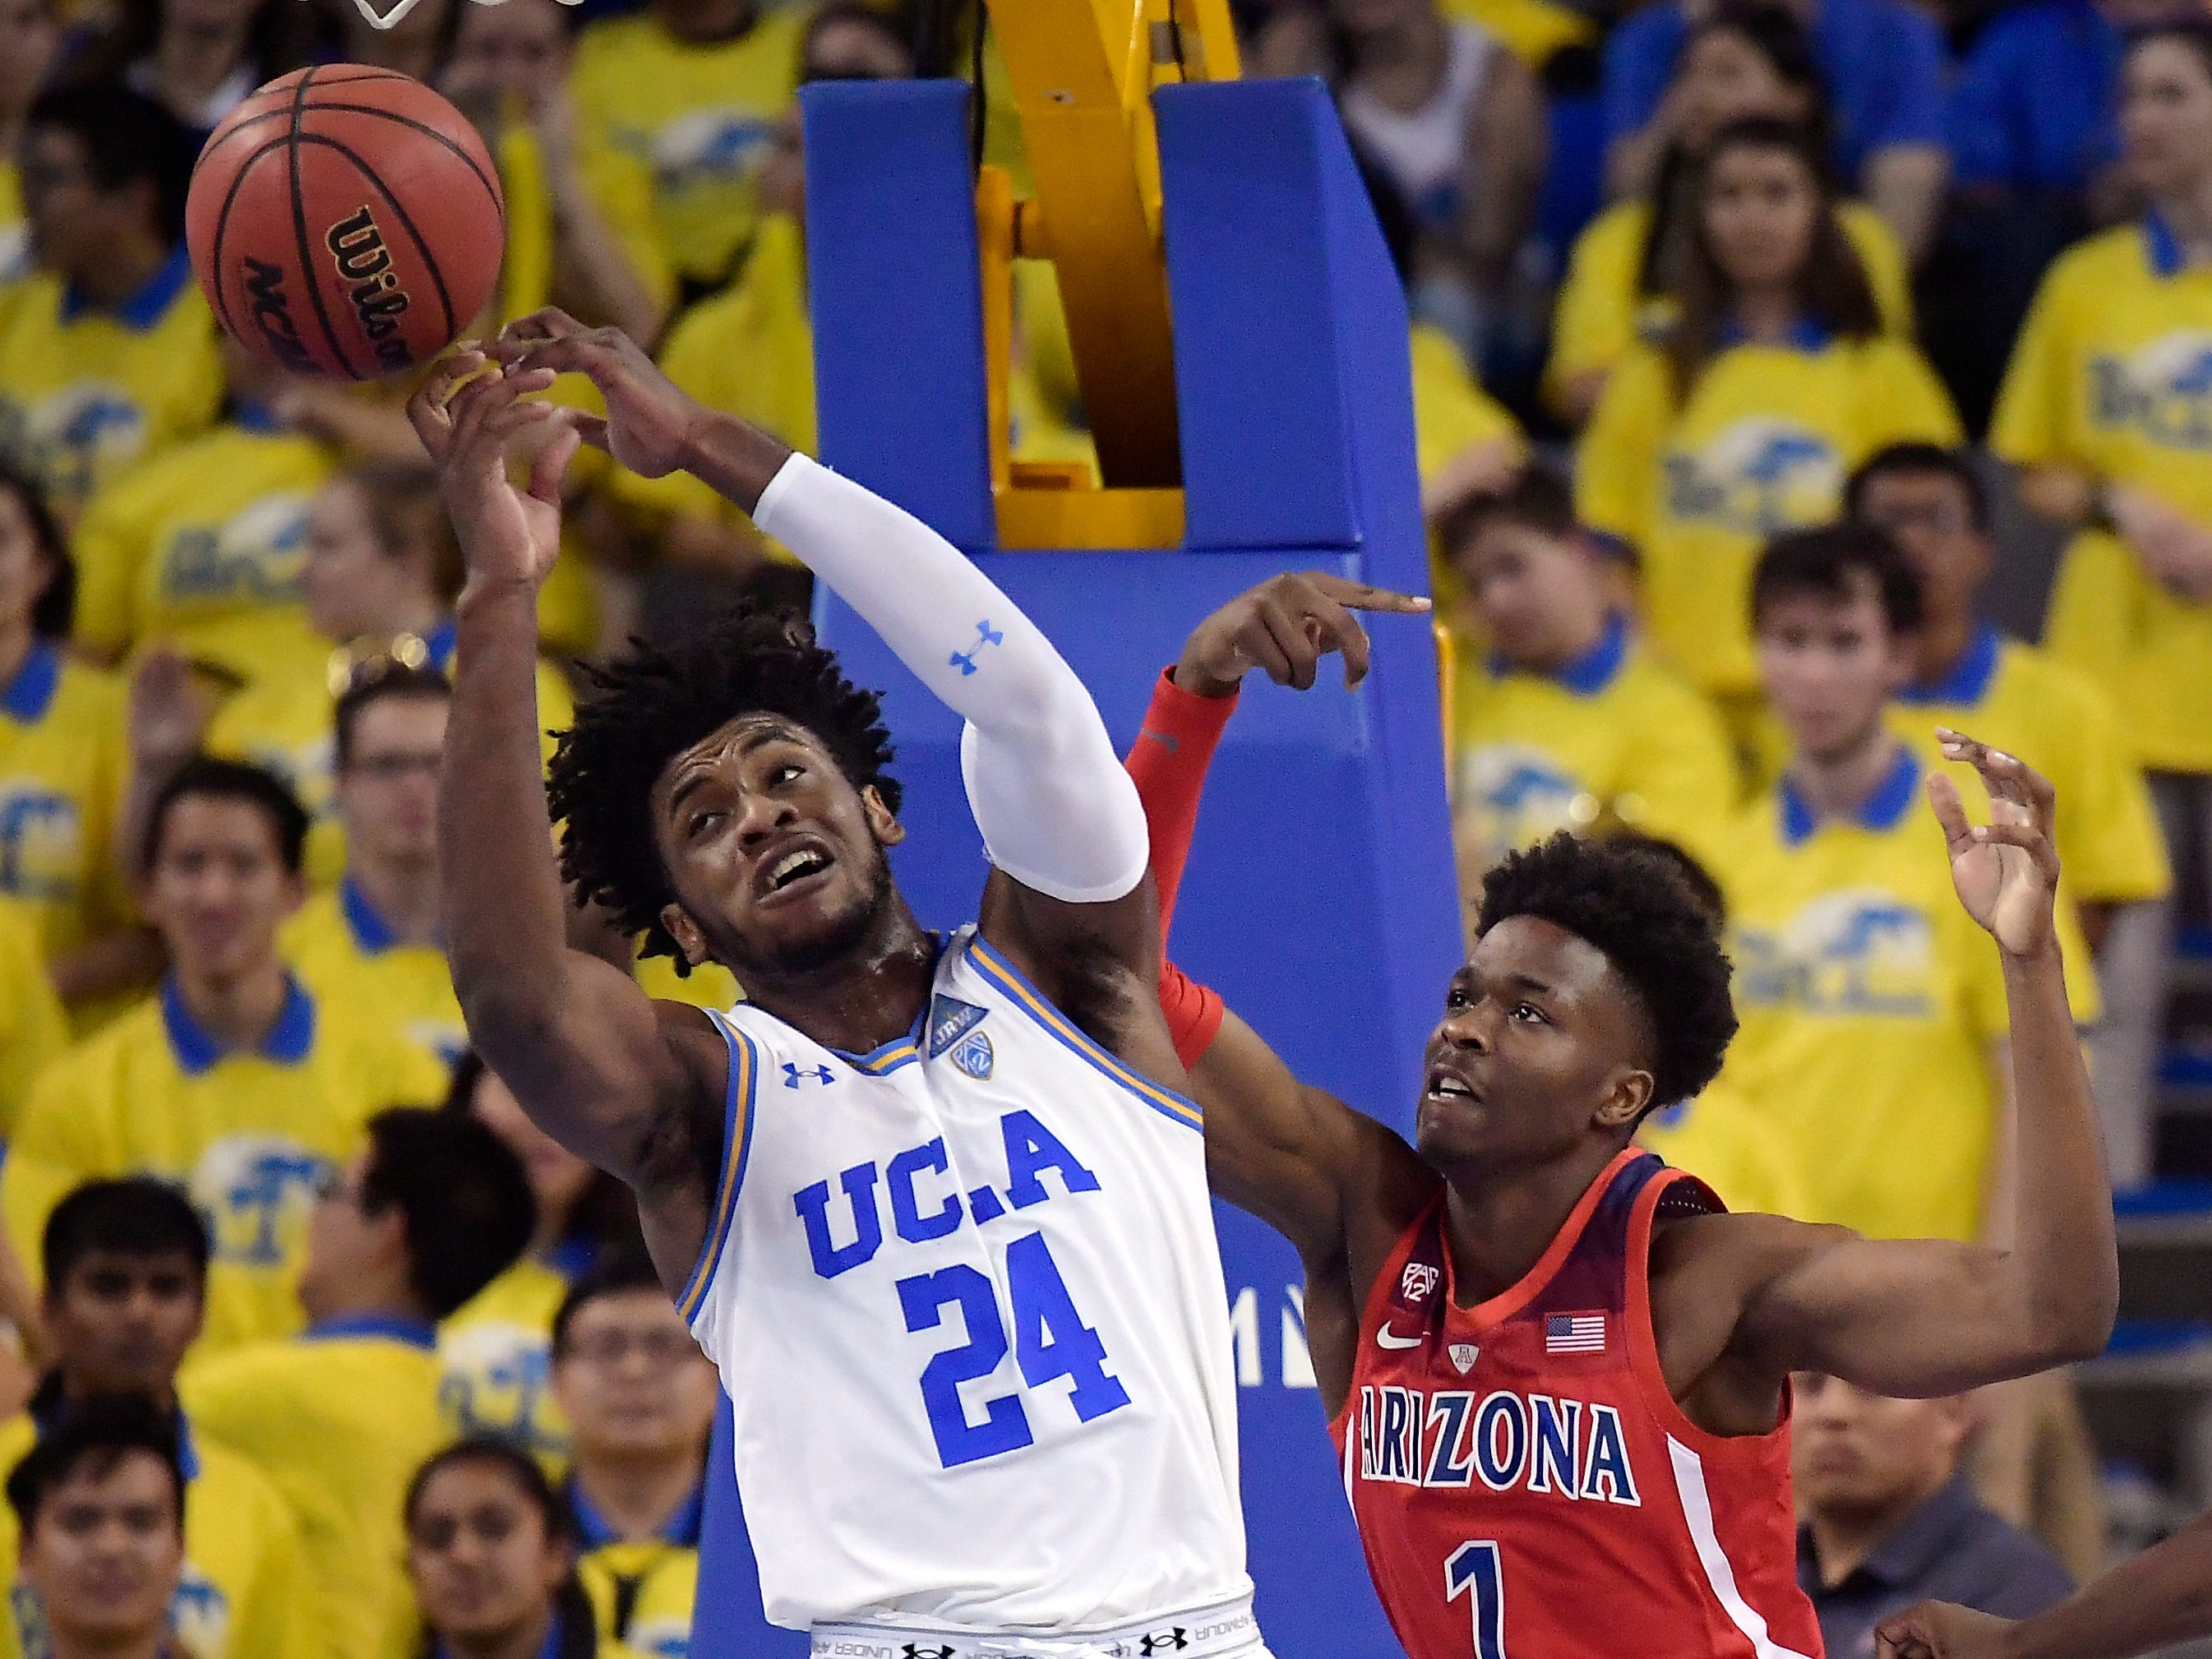 UCLA guard Jalen Hill, left, and Arizona guard Devonaire Doutrive reach for a rebound during the second half of an NCAA college basketball game Saturday, Jan. 26, 2019, in Los Angeles. UCLA won 90-69.